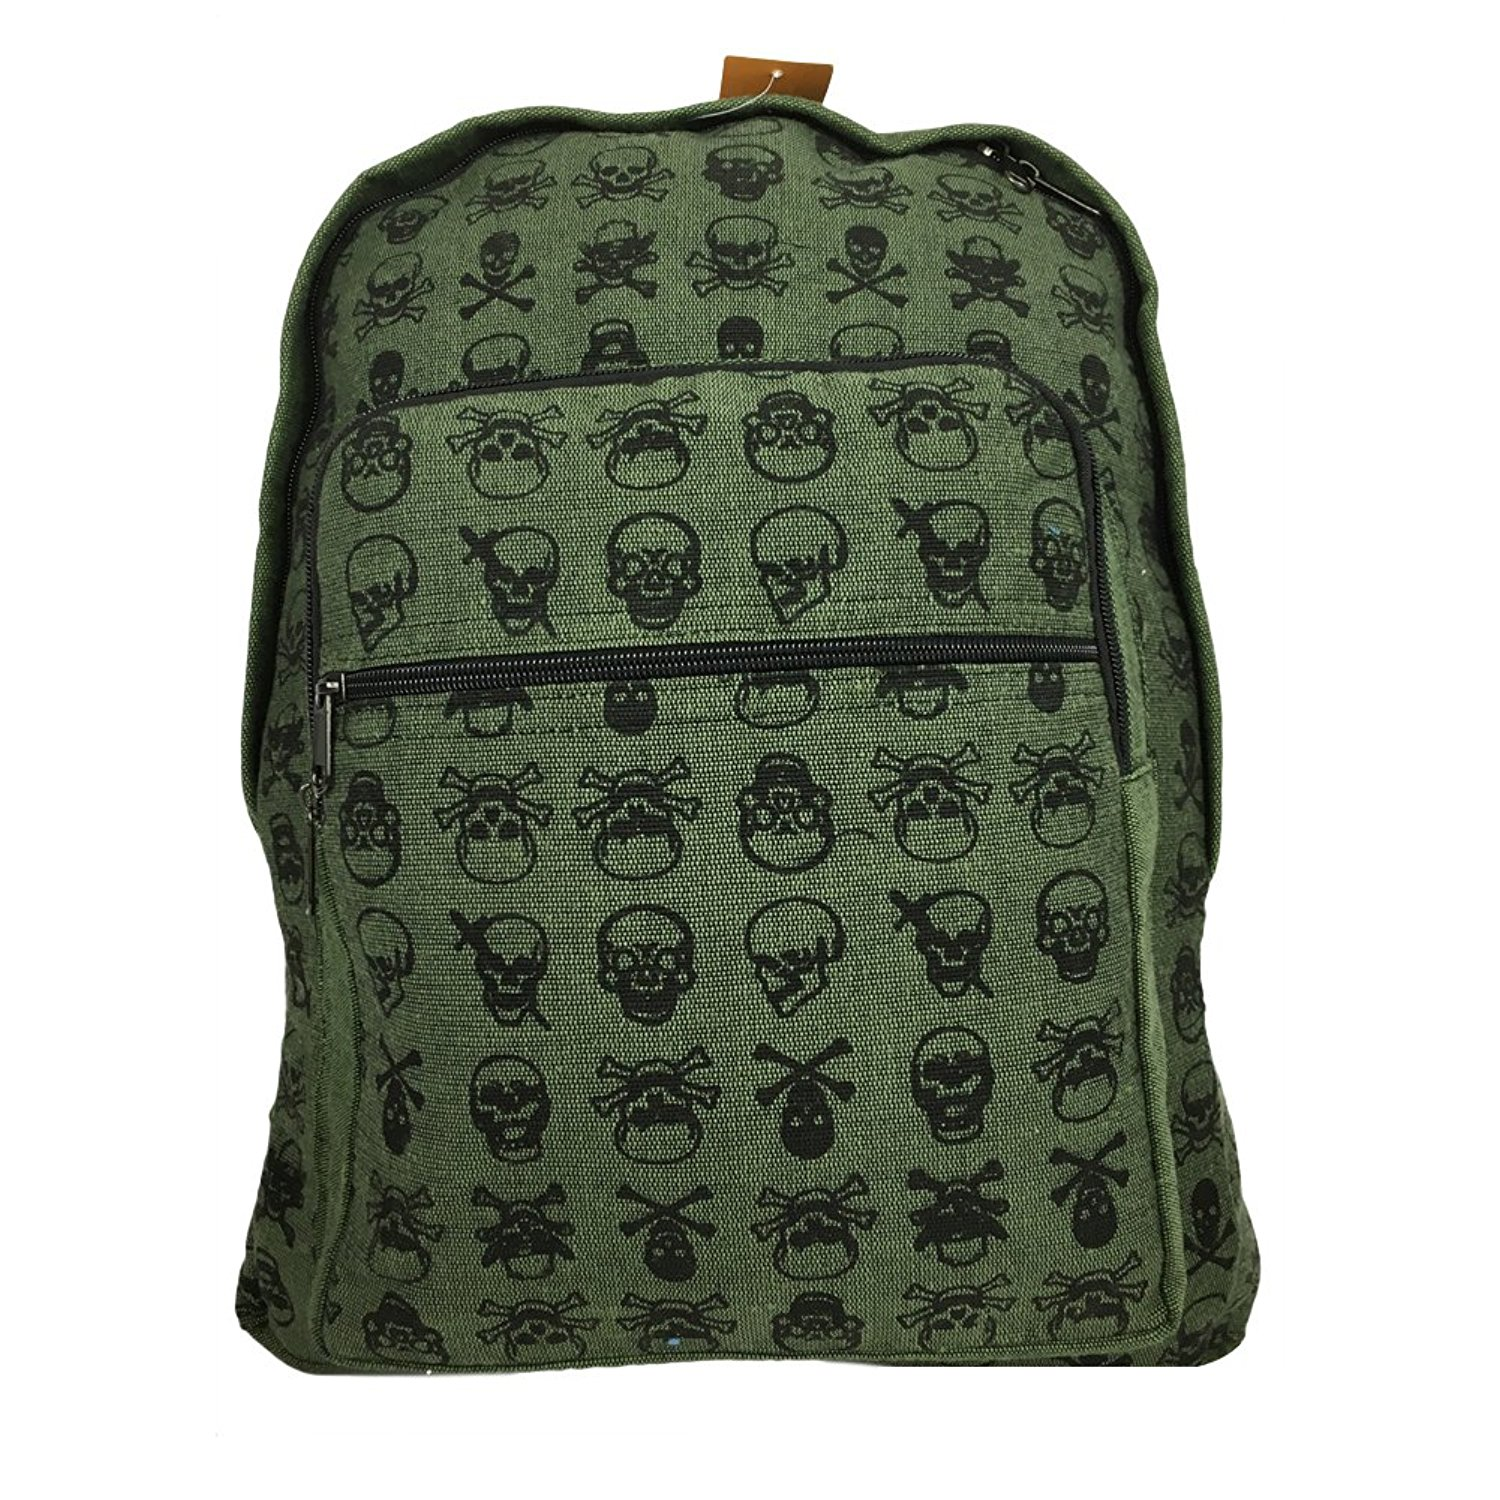 Fair Trade Skull Backpack, Handcrafted in the Himalayas